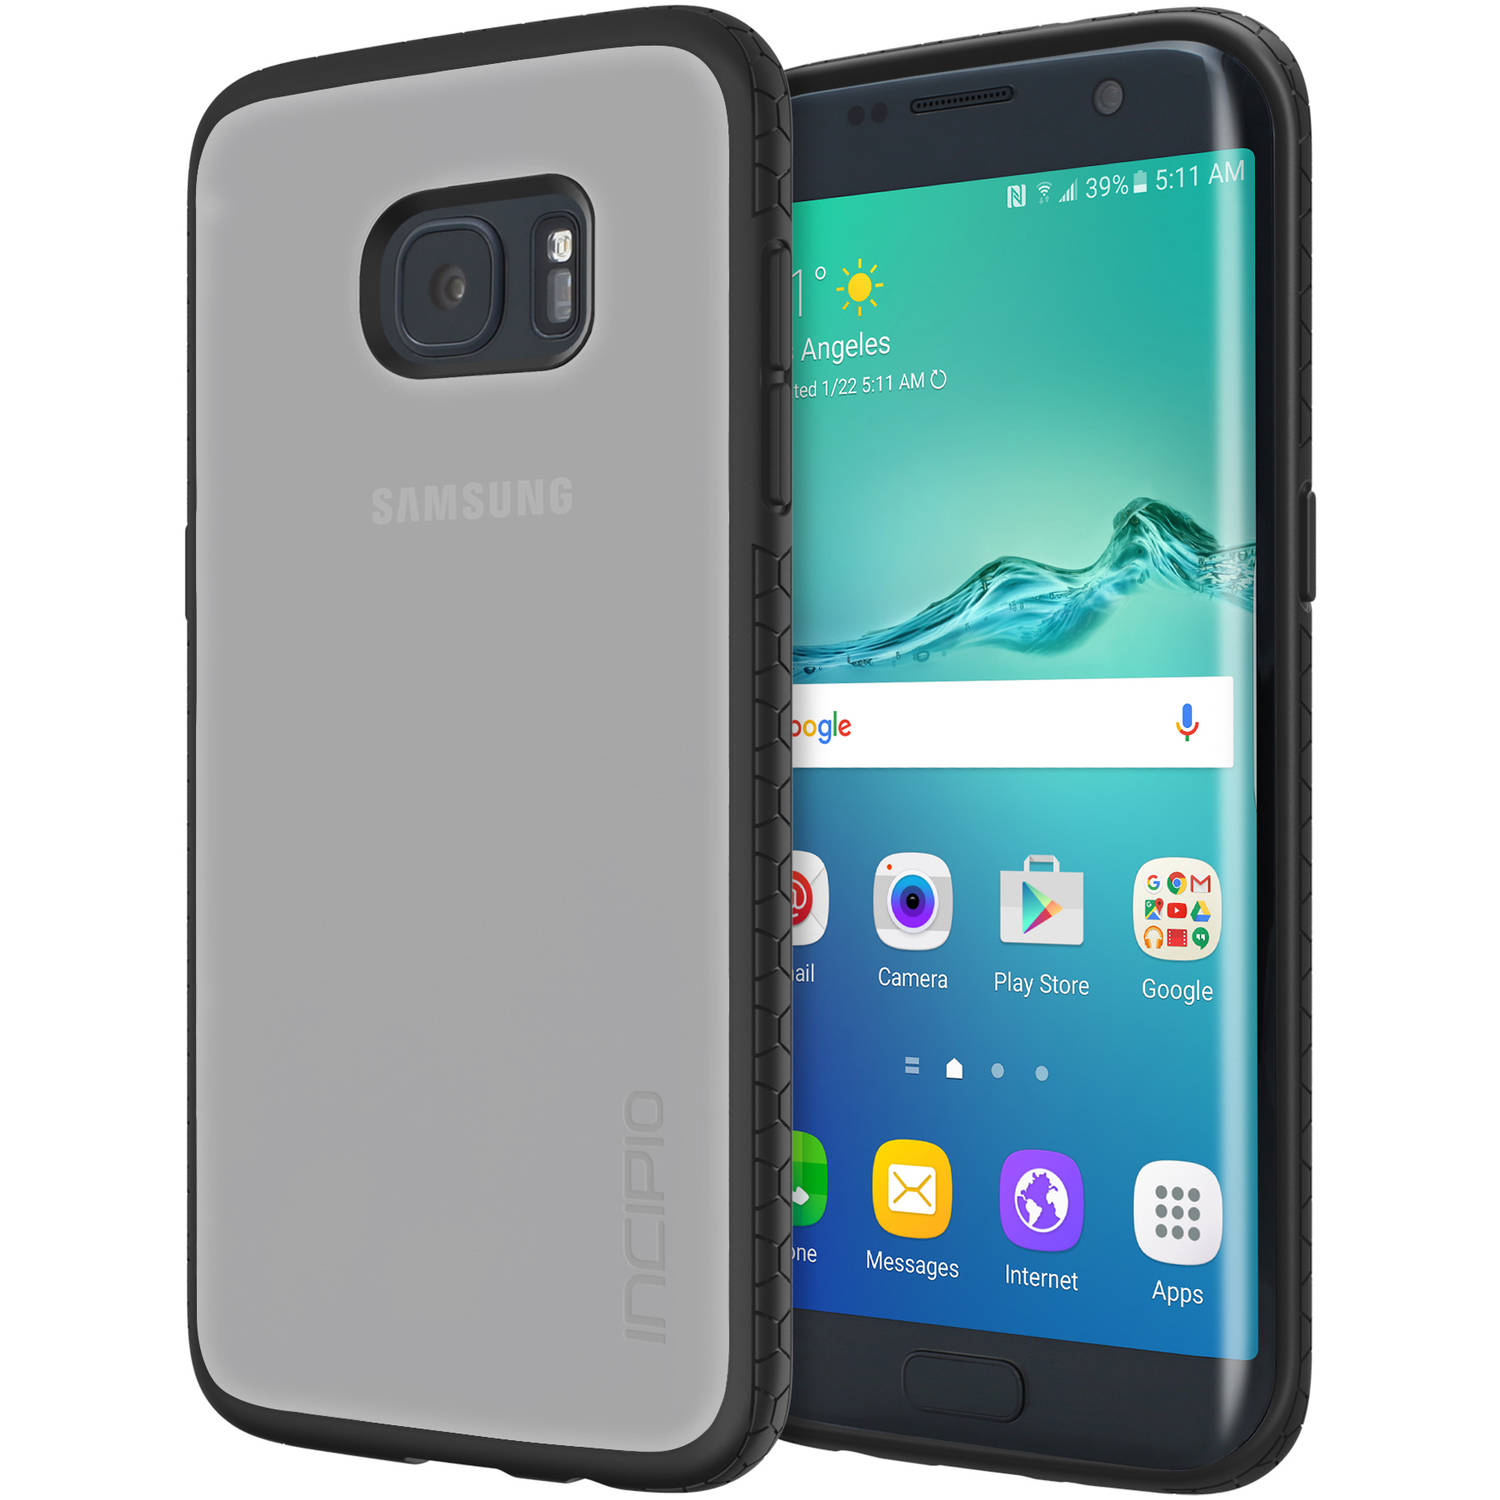 Incipio Octane for Samsung Galaxy S7 edge